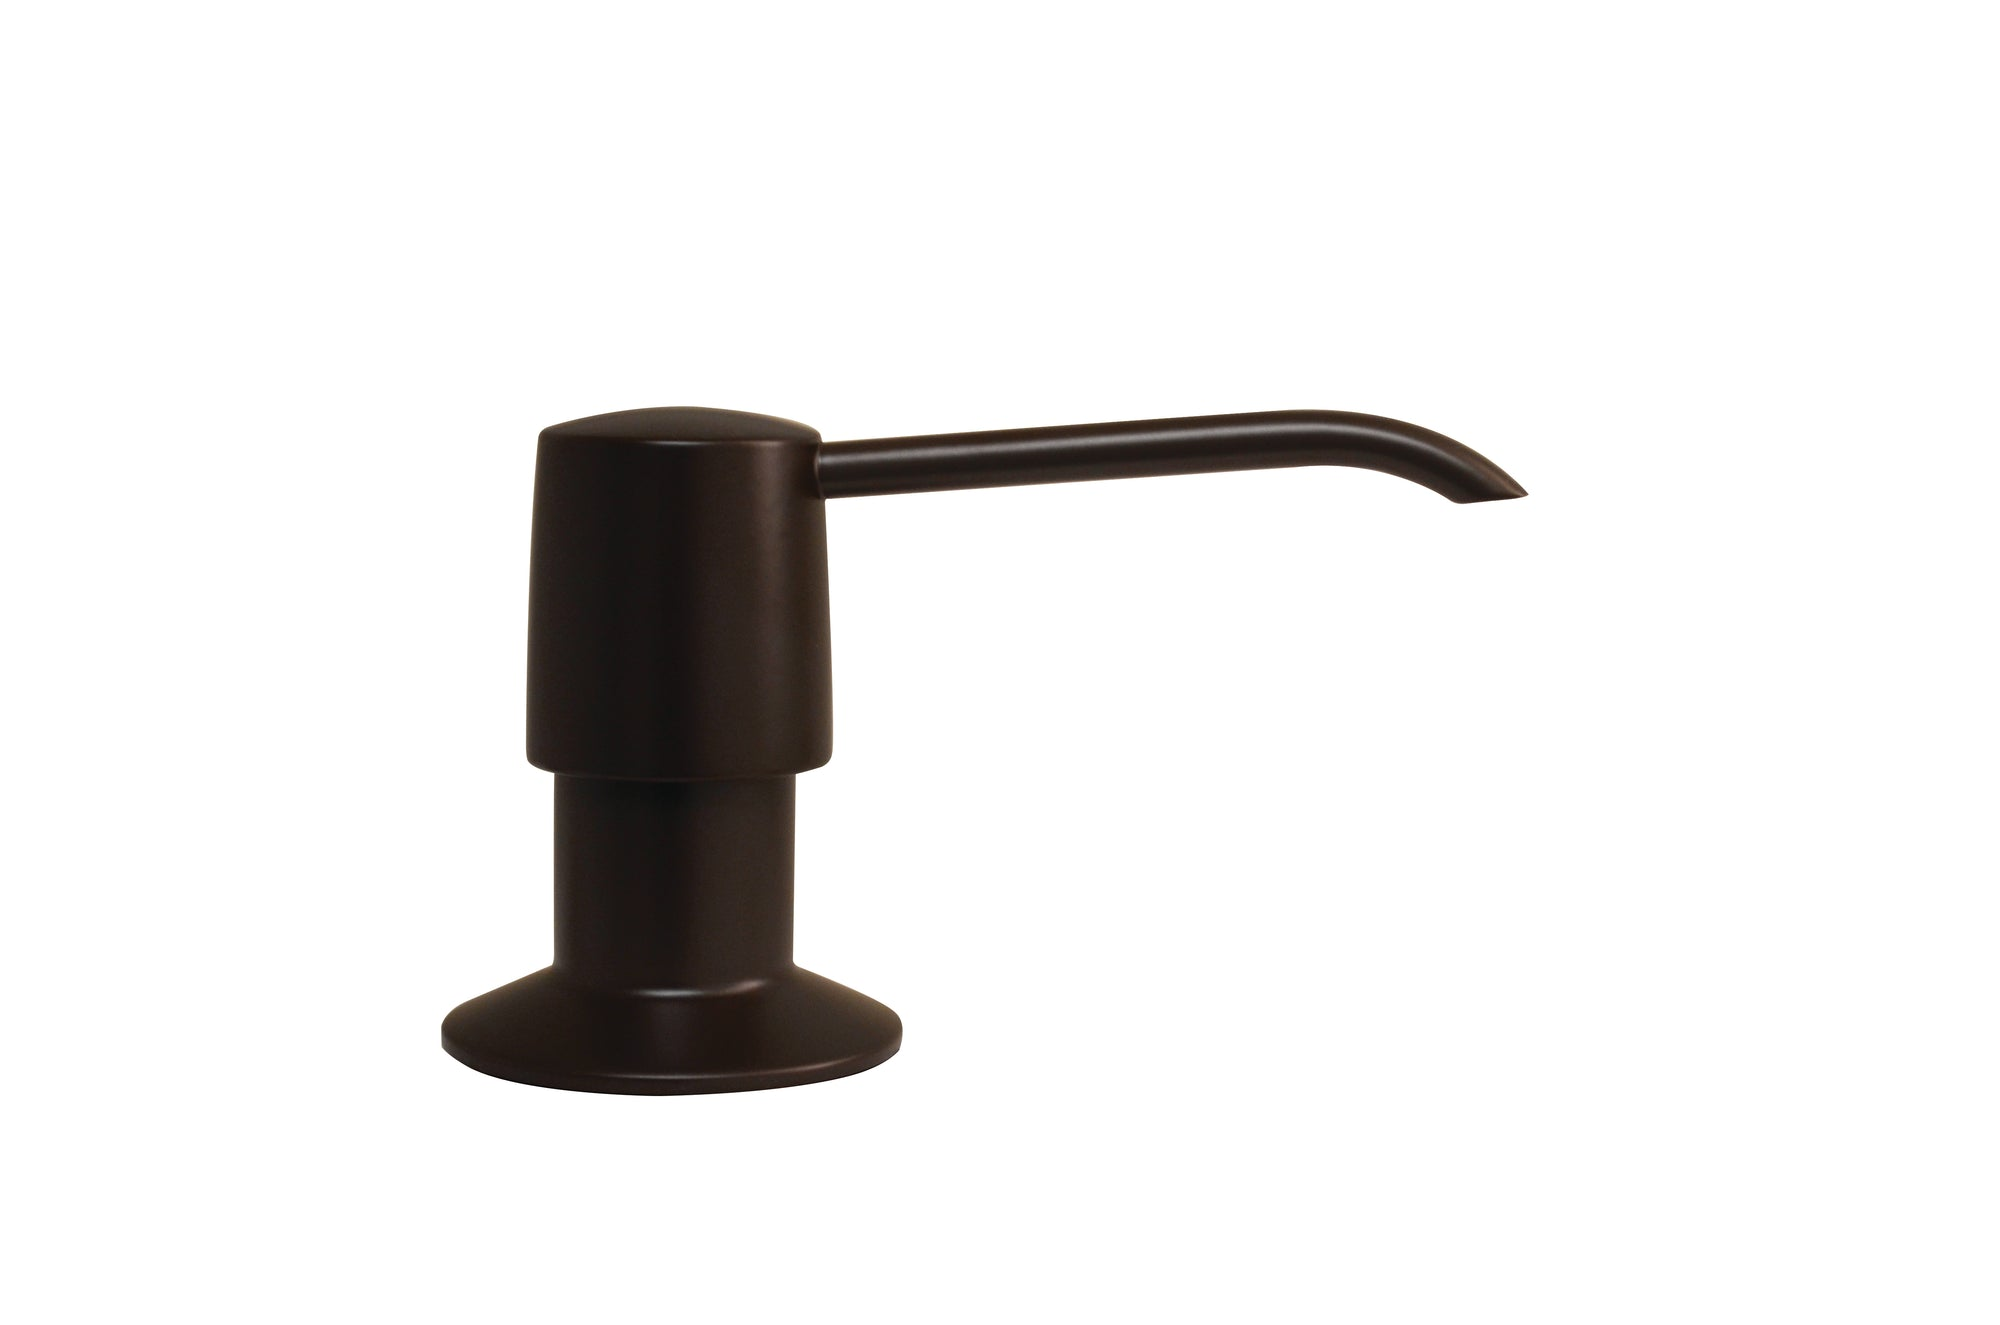 Solid Brass Soap/Lotion Dispenser